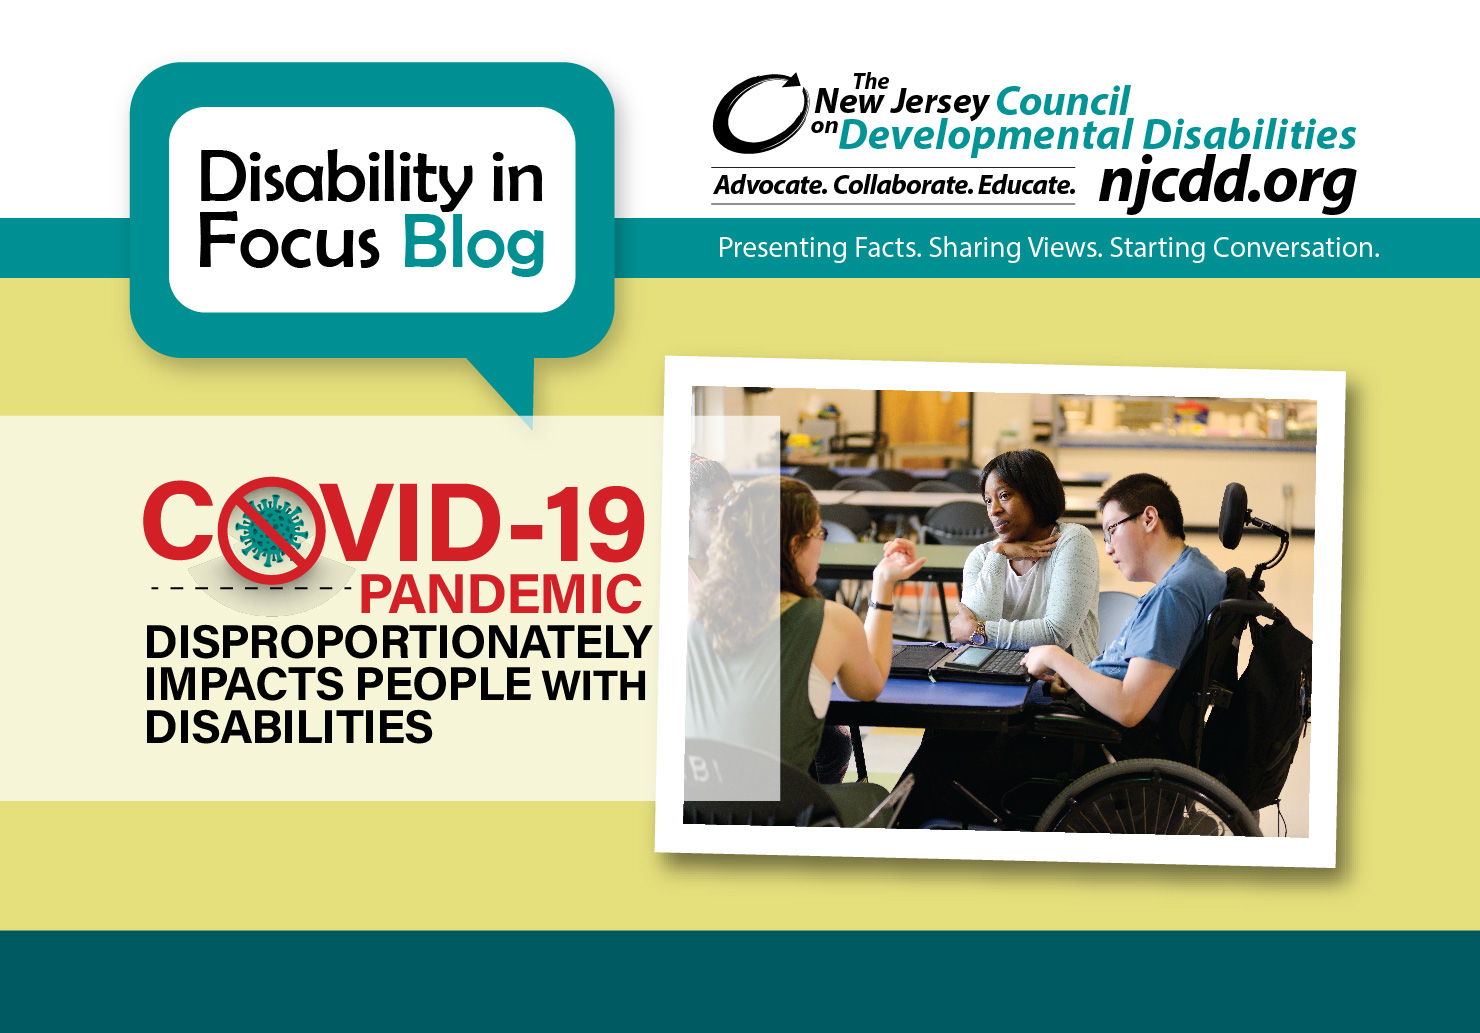 The COVID-19 Pandemic Disproportionately Impacts People with Disabilities